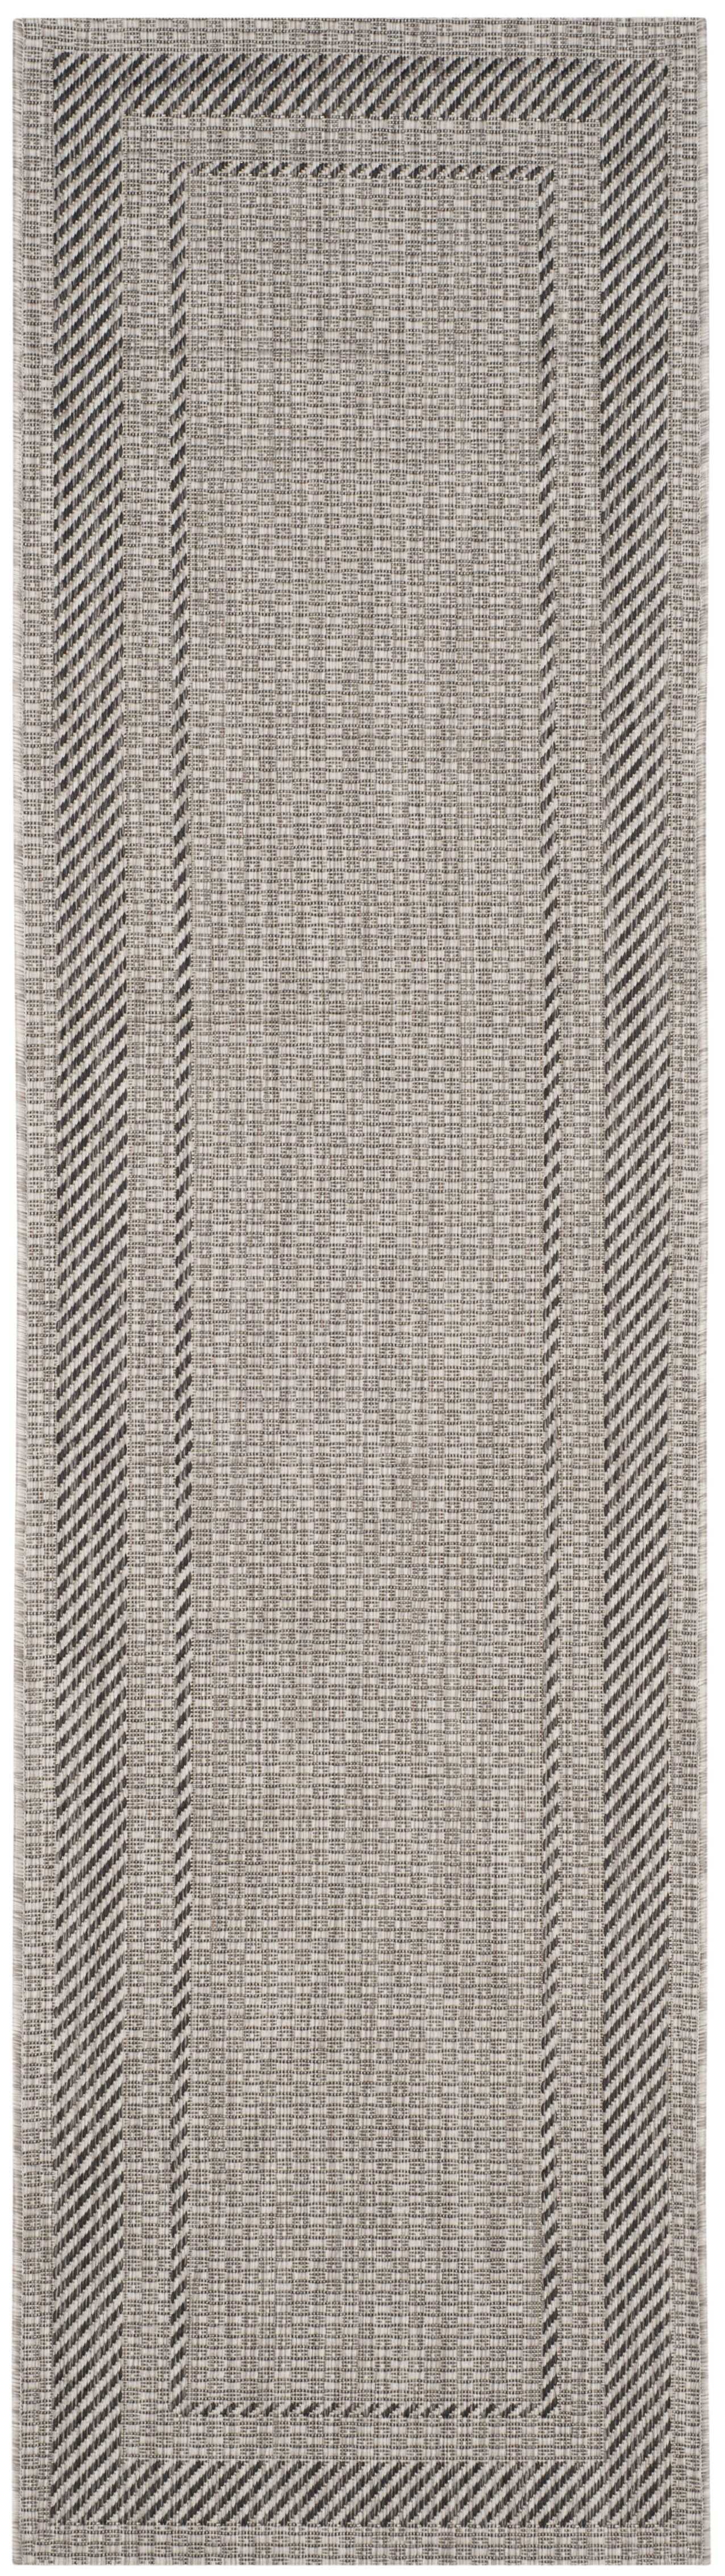 Rockbridge Beige/Black Indoor/Outdoor Area Rug Rug Size: Runner 2'3